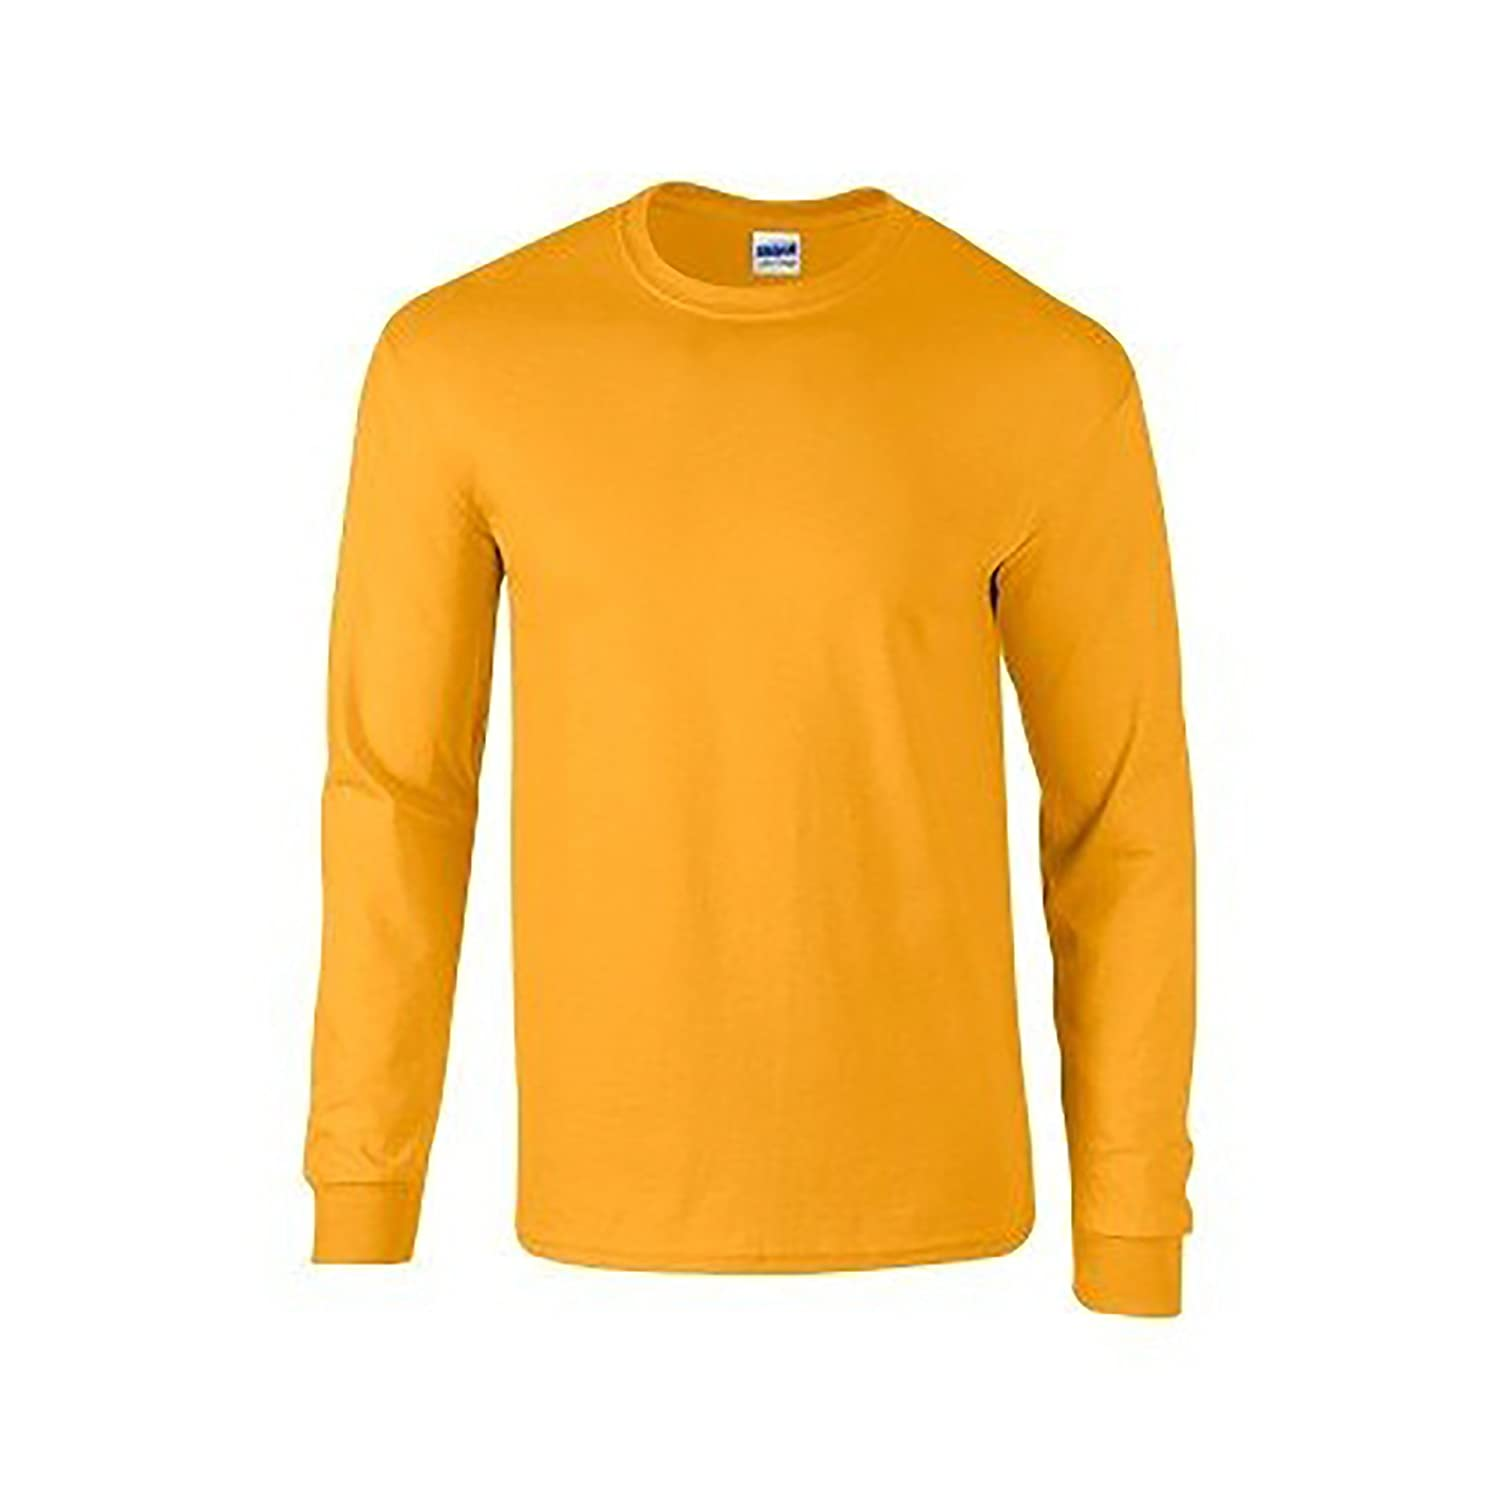 Gildan Mens Soft Style Long Sleeve T-Shirt G644